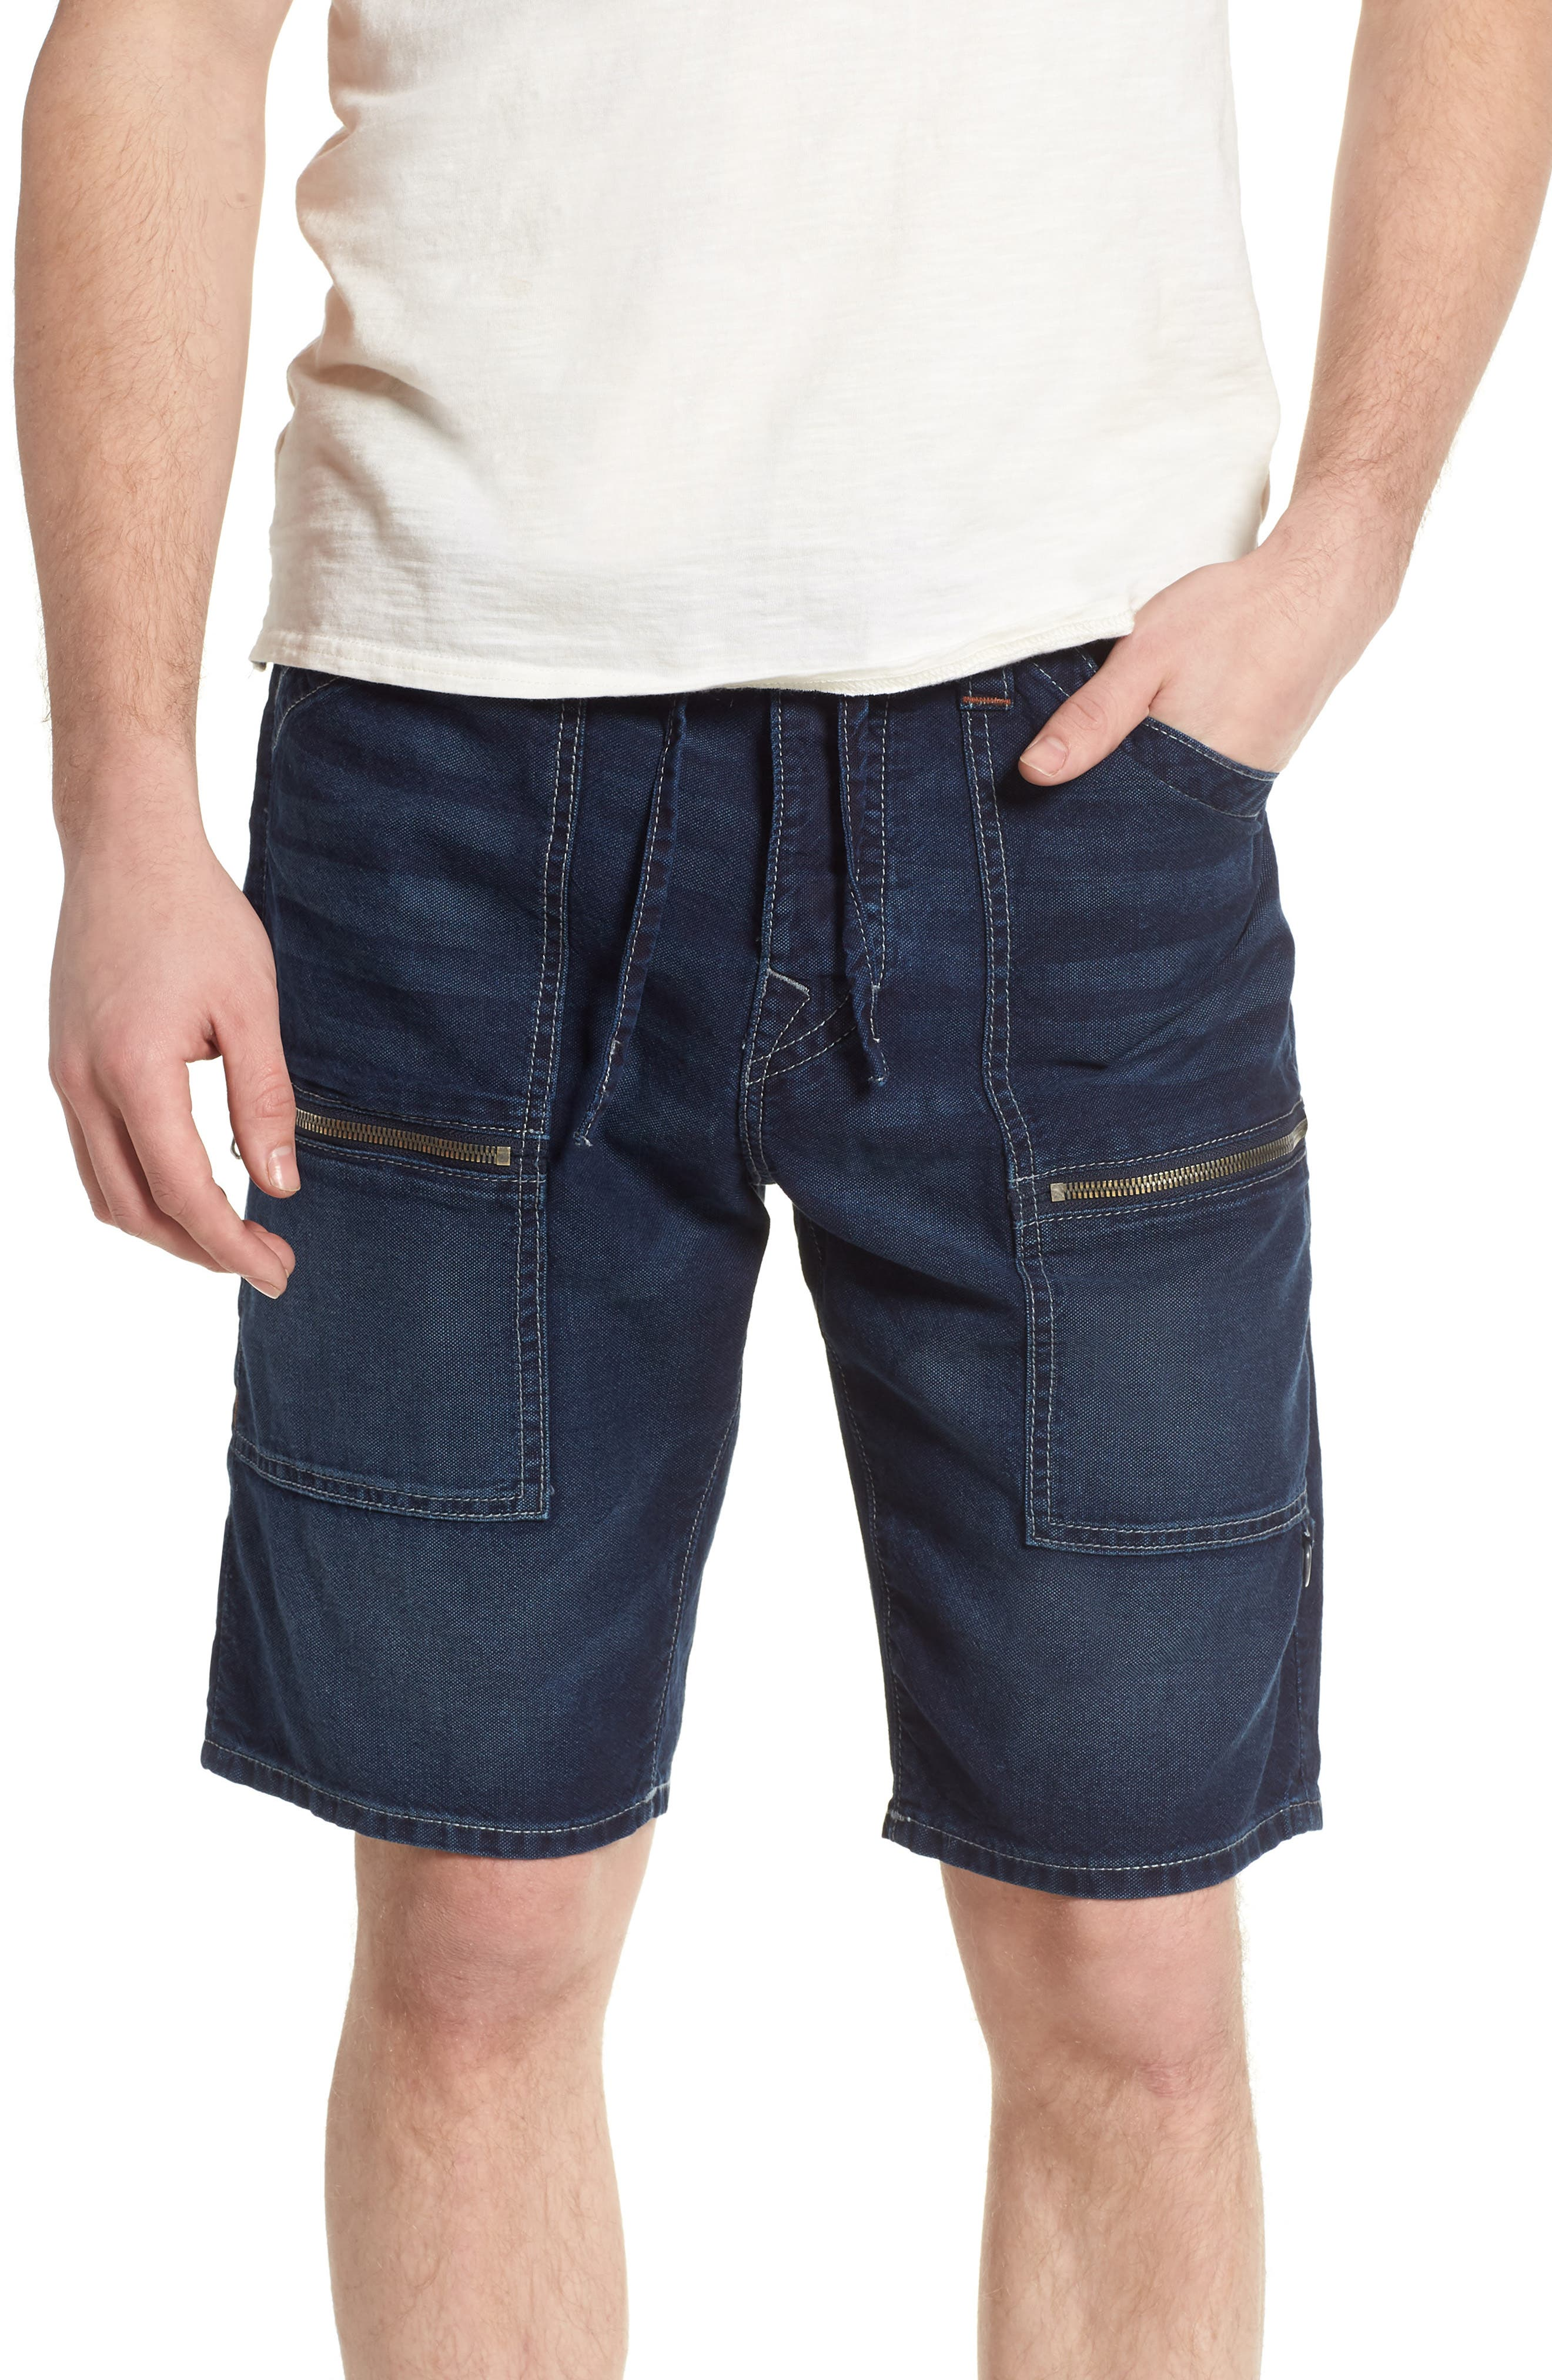 Trail Utility Shorts,                         Main,                         color, 402